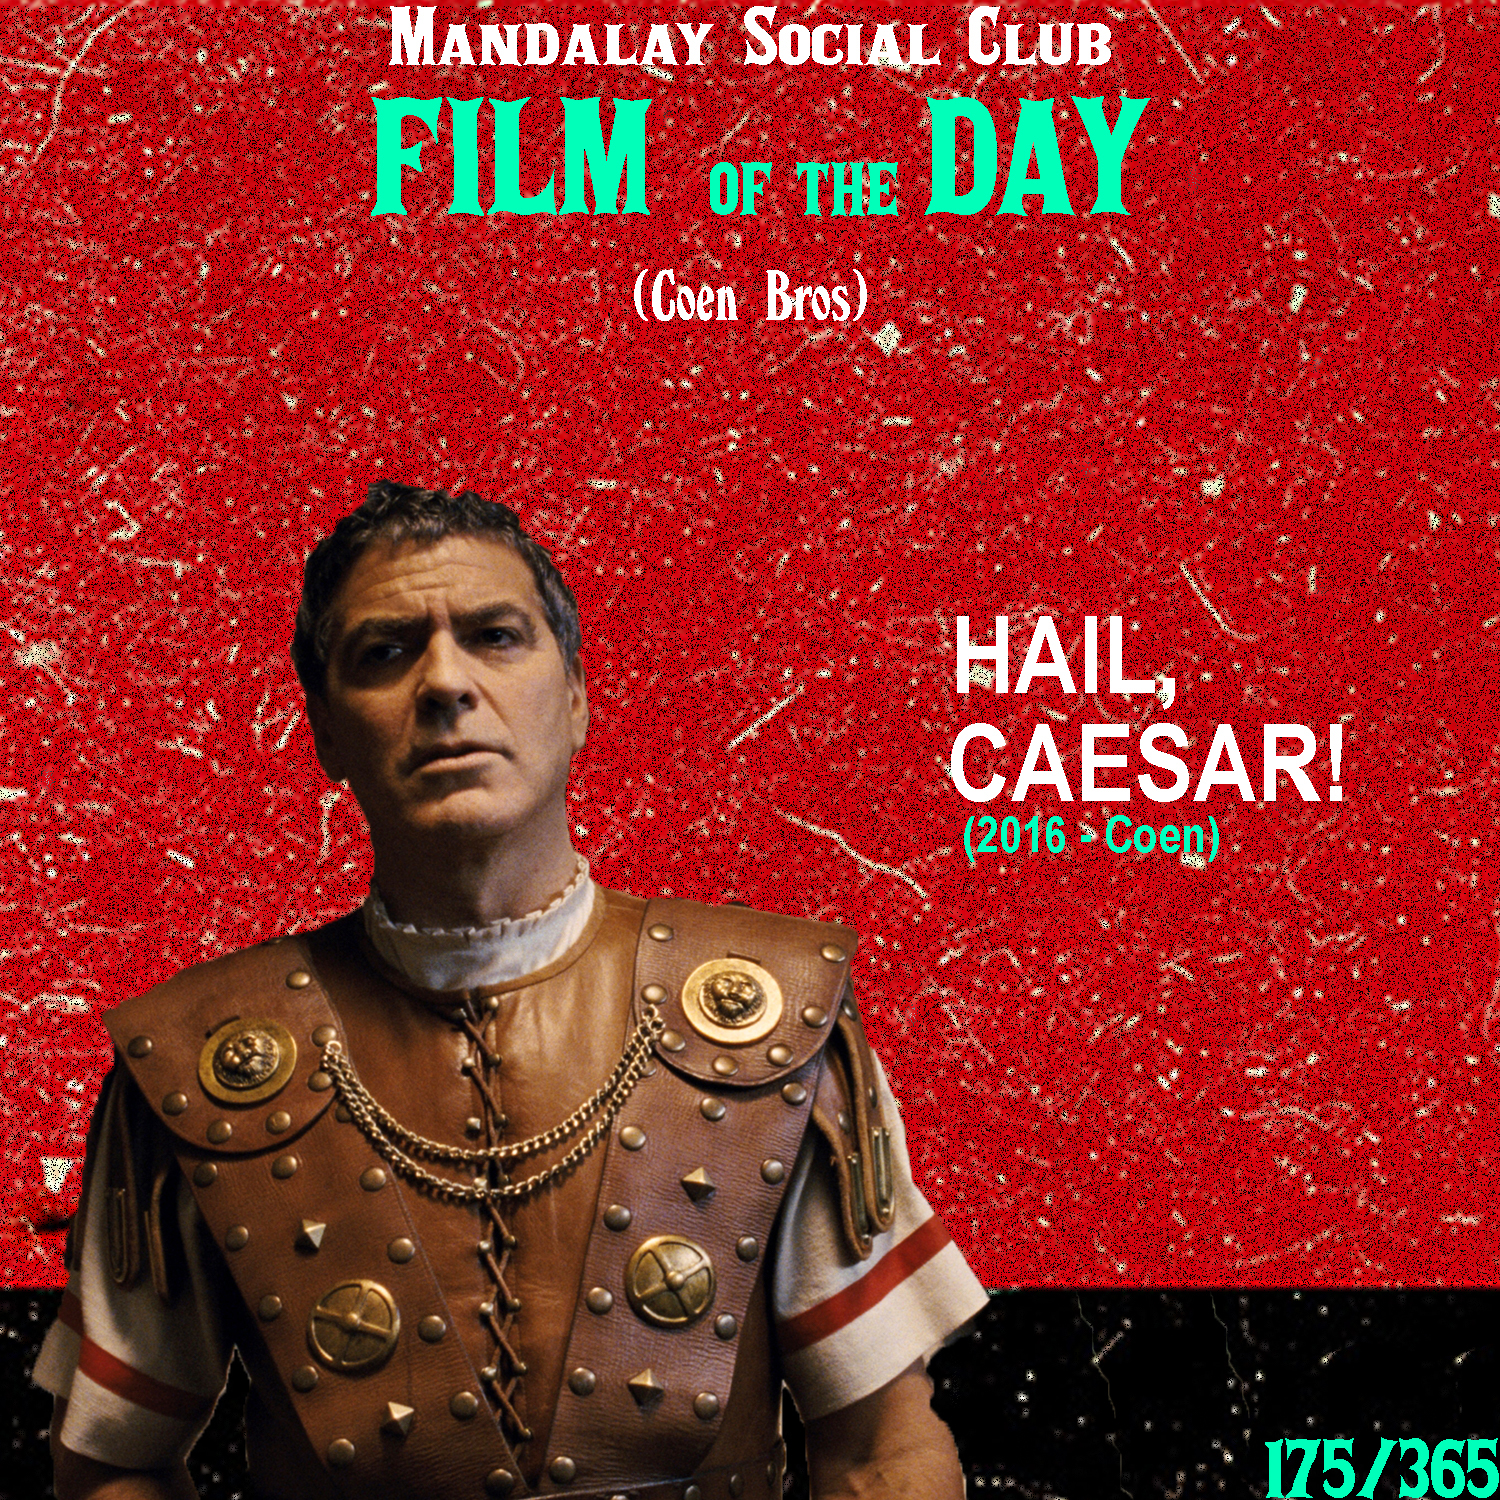 HAIL, CAESAR!     (dir. Coen Brothers)   The Coen Brothers' star vehicle of a film boasts their biggest cast to date in this play on the studio system in the Golden Age of Hollywood.  Josh Brolin stars as Eddie Mannix, a 'fixer' at Capitol Pictures, who spends his days and nights fixing all the issues that take place in dealing with actors, directors, and reporters in Hollywood. Among everything going on at the Capitol Pictures lot, George Clooney, starring as actor Baird Whitlock, has been kidnapped by the Communists and held for ransom. It's up to Mannix to bring Whitlock back so they can finish his film  Hail Caesar !   Hail, Caesar!  is nowhere near one of the Coen's best films, but it's massive cast gives it quite a bit of charm. Since there are so many stars like Clooney, Brolin, Scarlet Johansson, Jonah Hill, Tilda Swinton, Channing Tatum, and more, we barely get a chance to dive into any of their stories so the film unfortunately feels so facial that it's hard to really attach yourself to any of the characters. It's not a great film, but it is fun to say the least!    3/5     WATCH: Putlocker (FREE), iTunes (RENT)